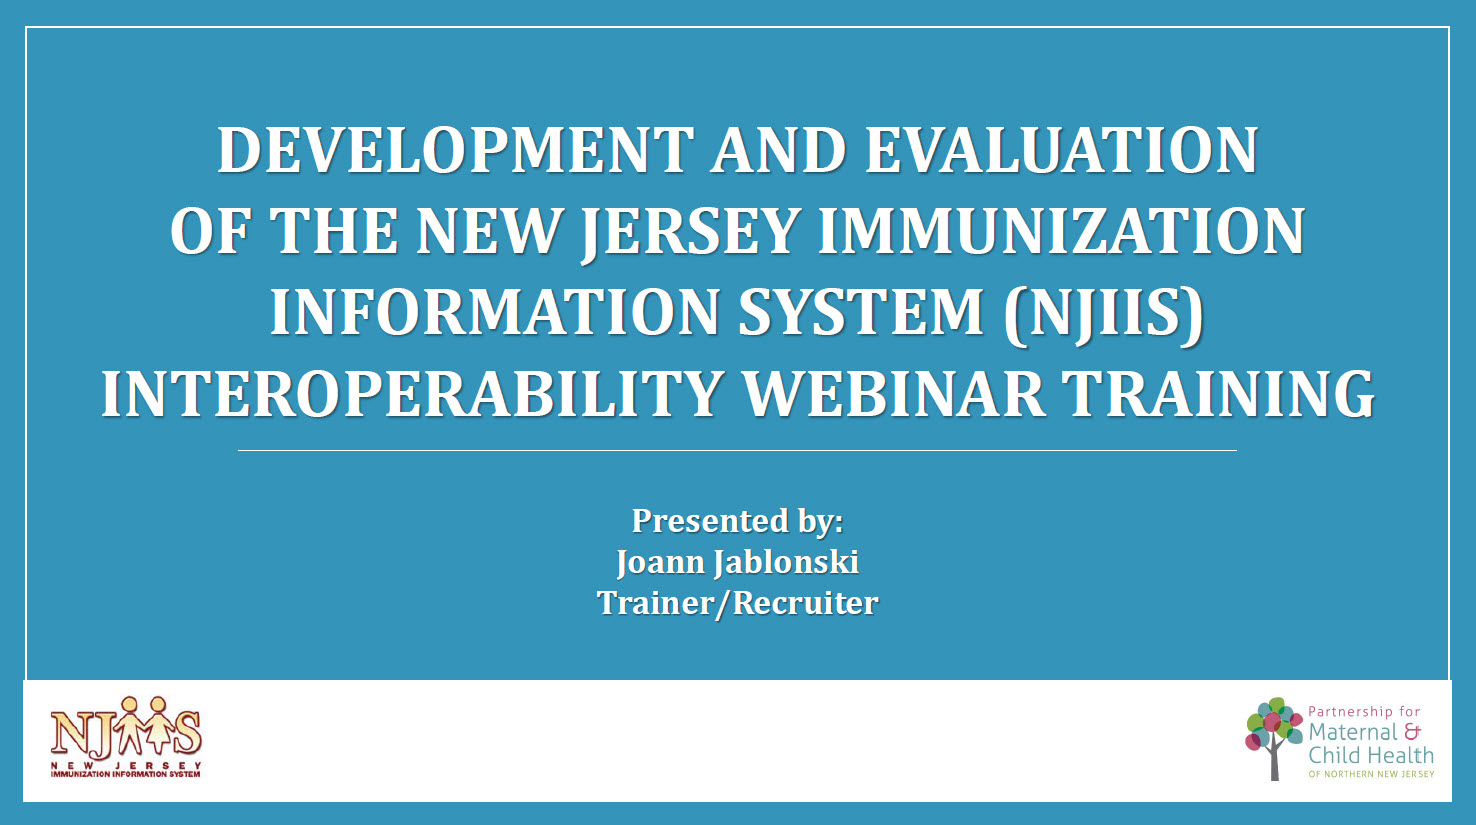 Development and Evaluation of the NJIIS Interoperability Webinar Training